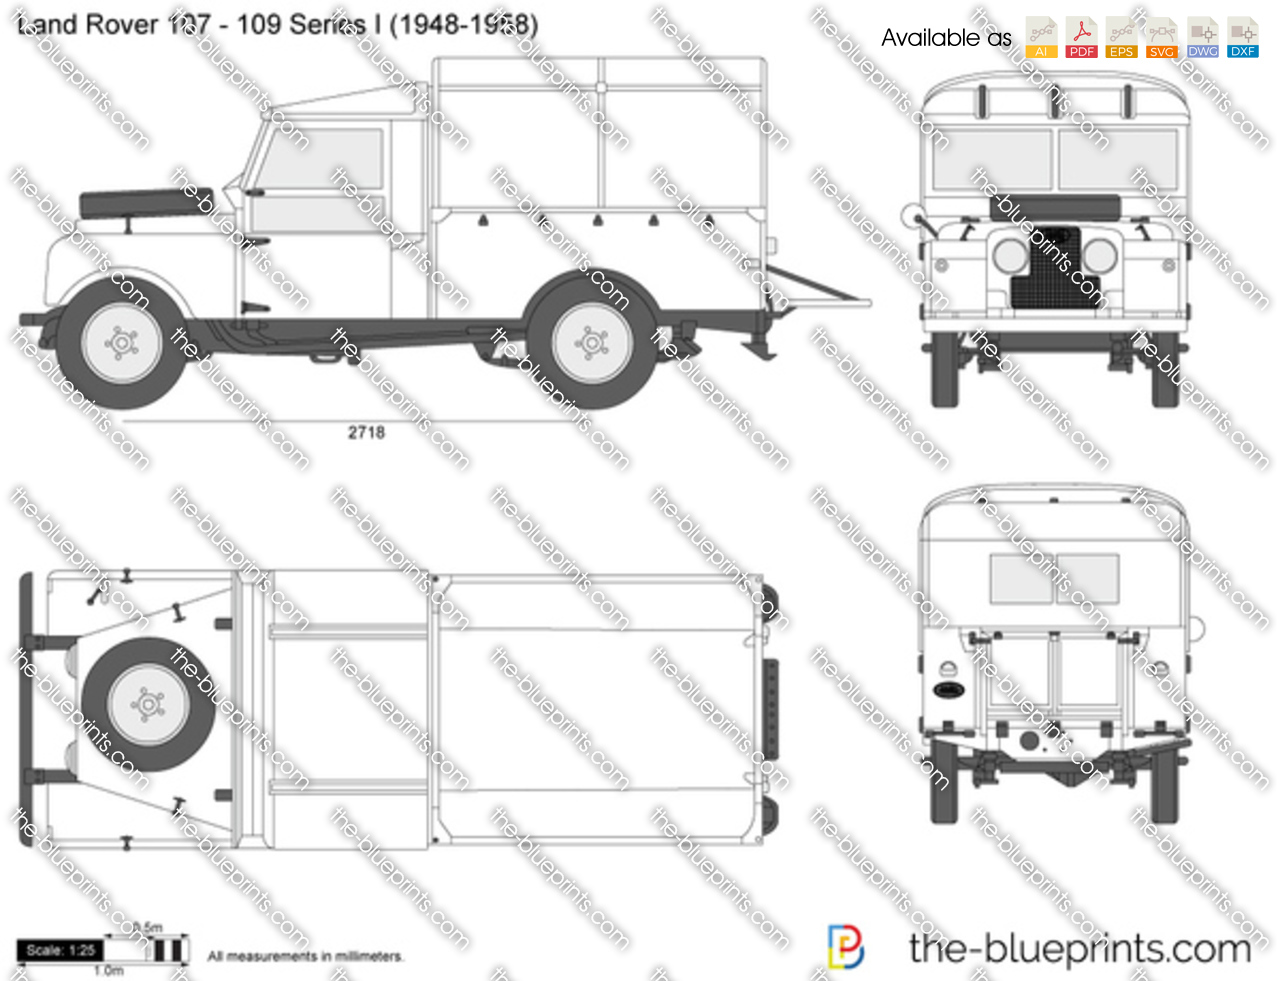 The Blueprints Com Vector Drawing Land Rover 107 109